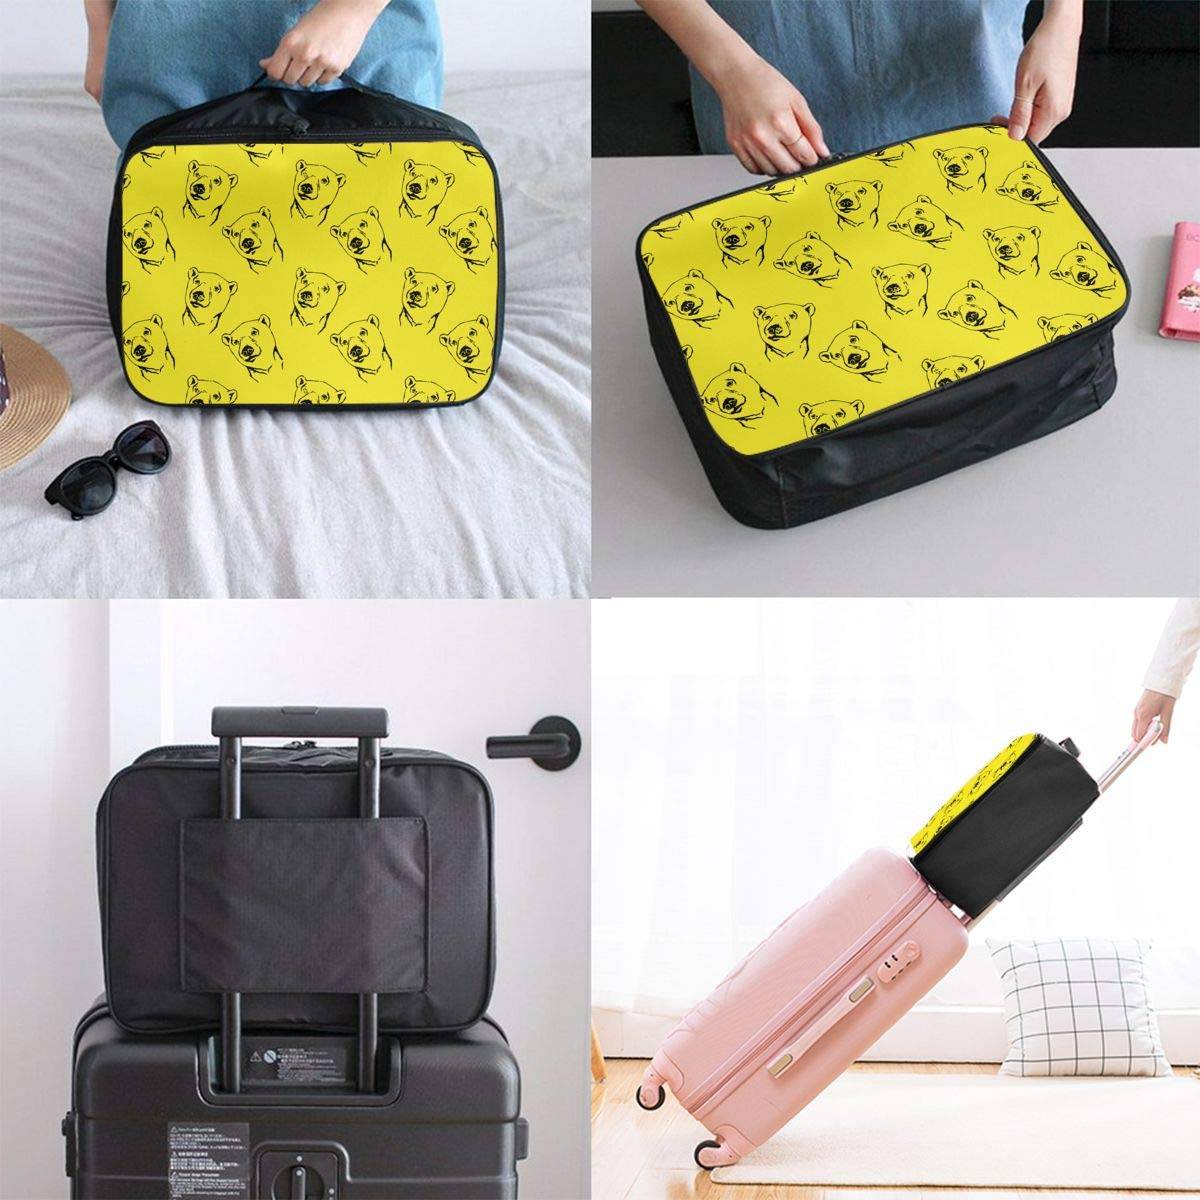 YueLJB Polar Bear Pattern Lightweight Large Capacity Portable Luggage Bag Travel Duffel Bag Storage Carry Luggage Duffle Tote Bag